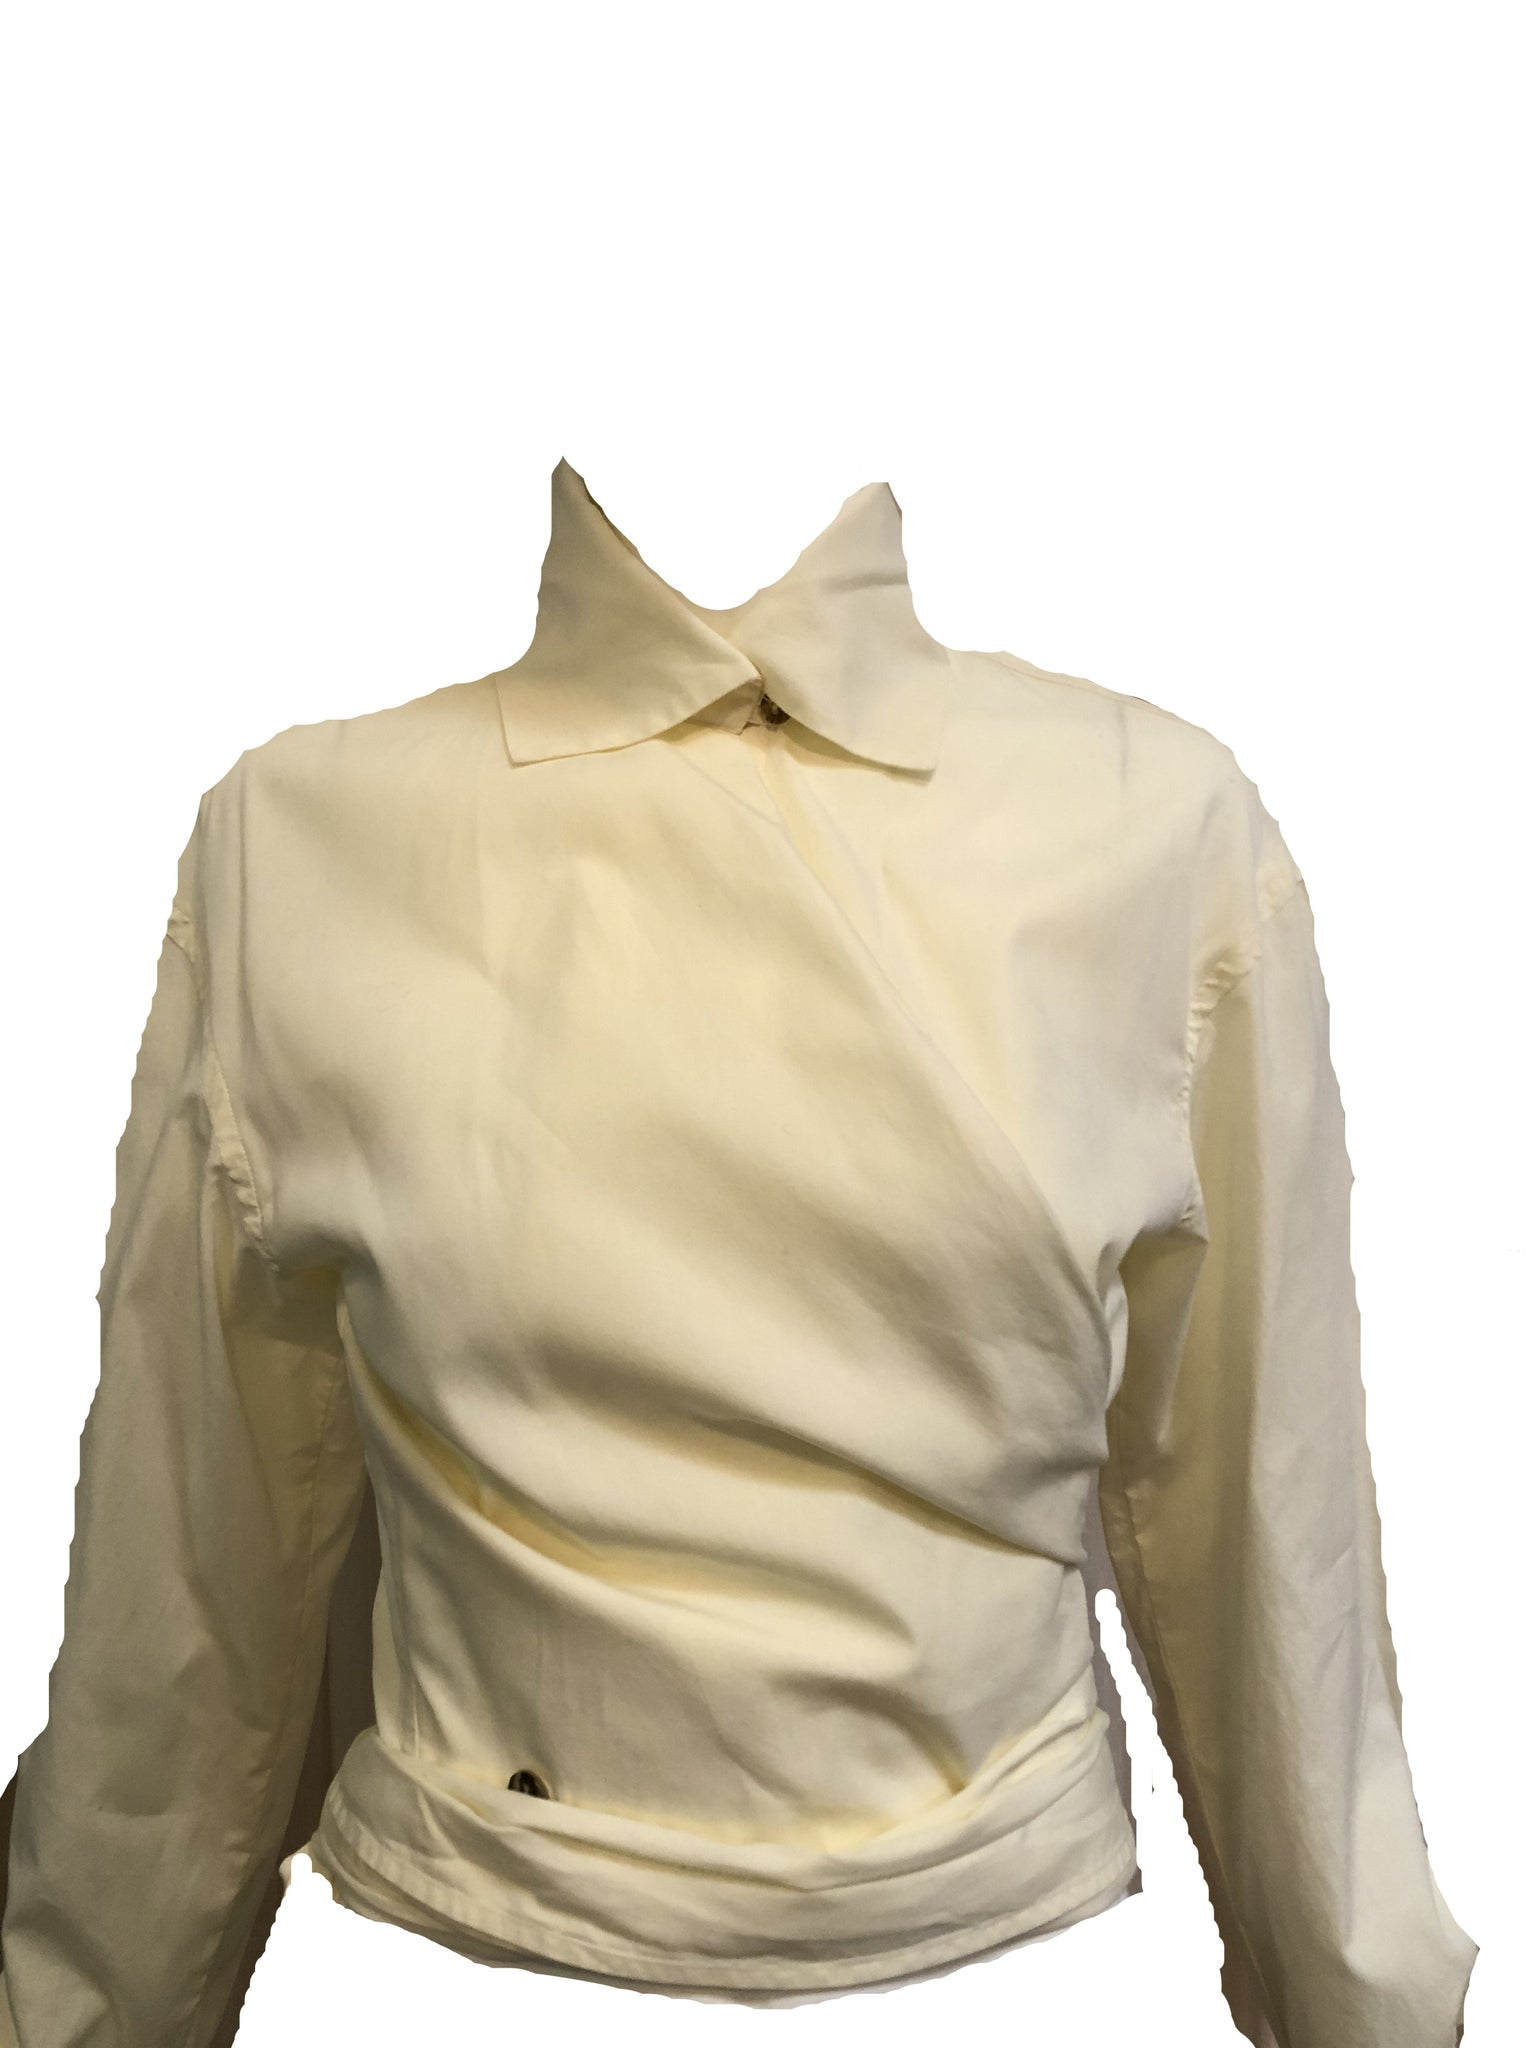 Romeo Gigli Iconic Ivory Cotton Wrap Blouse CLOSE UP FRONT 3 of 5